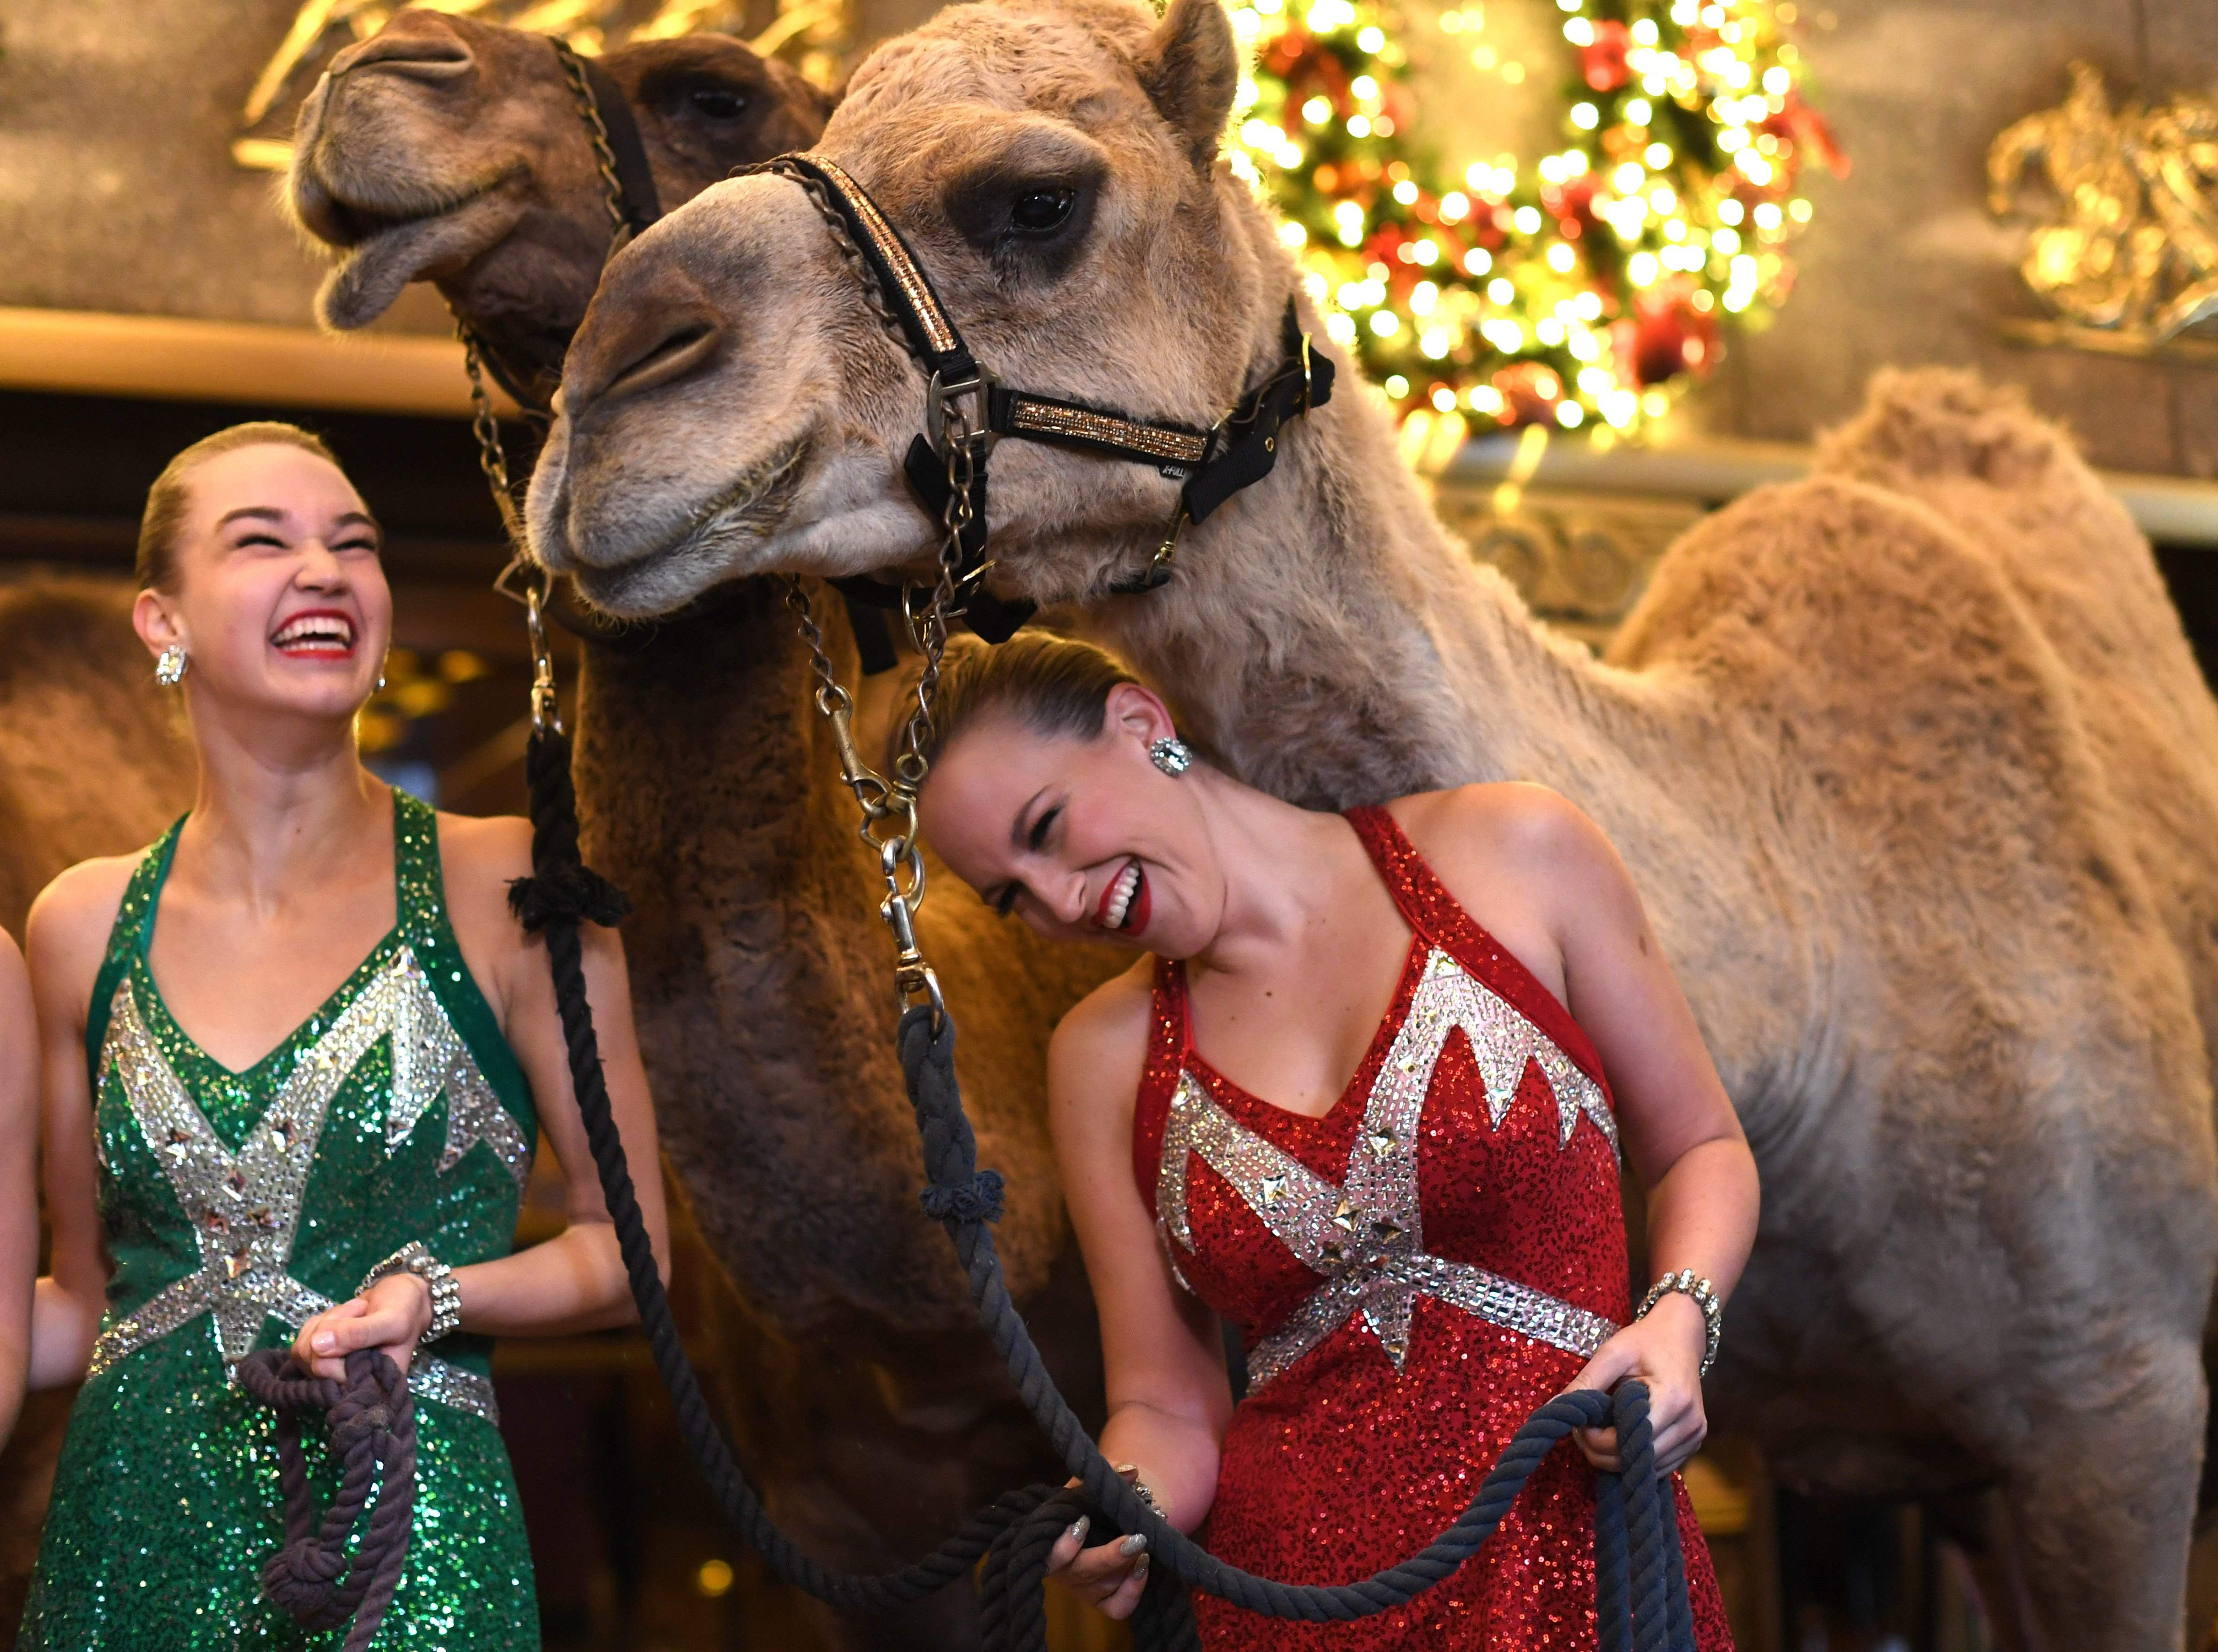 Radio City Rockettes Samantha Harvey and Kathleen Laituri (L) pose with camels as the Radio City dancers  welcome the camels, sheep and donkey back to Radio City Music Hall November 5, 2018 for their starring role in the Living Nativity scene in the 2018 production of the Christmas Spectacular Starring the Radio City Rockettes. (Photo by TIMOTHY A. CLARY / AFP)TIMOTHY A. CLARY/AFP/Getty Images